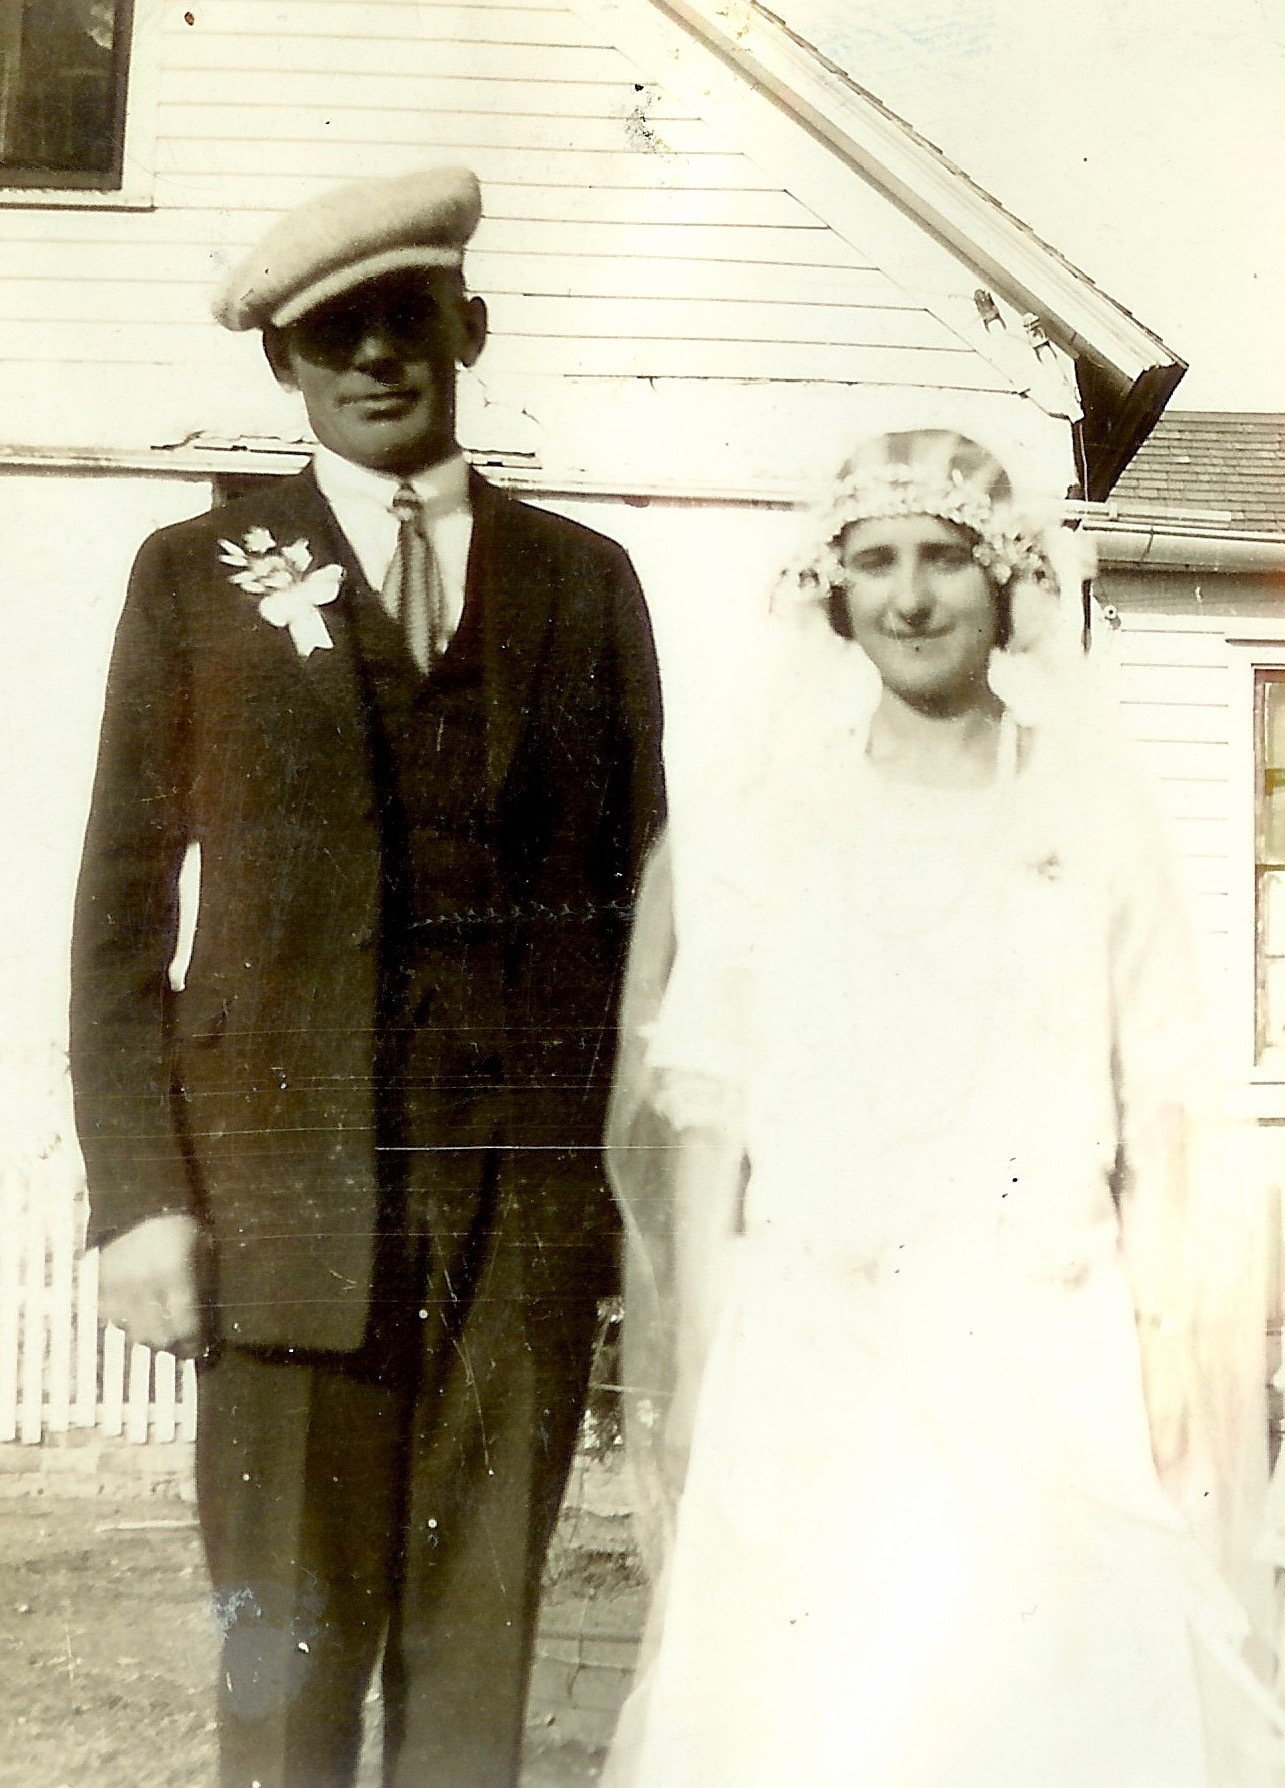 grandpa andrew and grandma mary on their wedding day in 1924